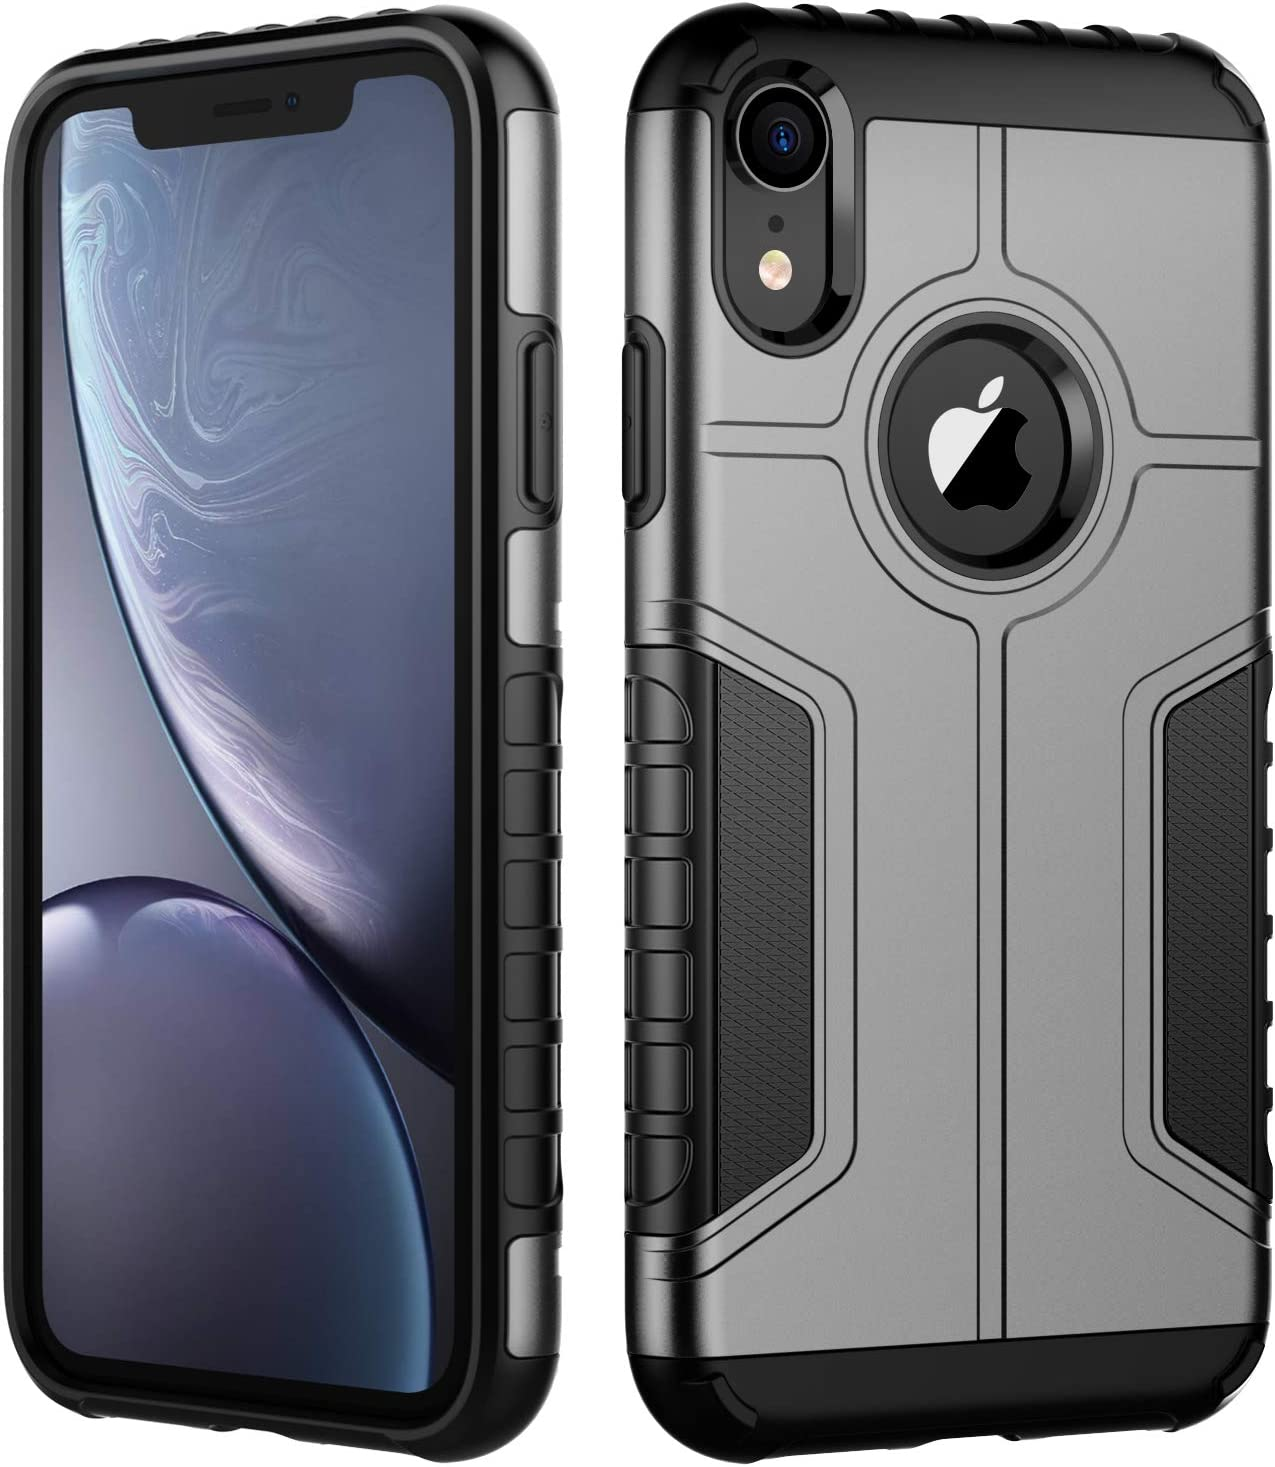 JETech Case for iPhone XR, Dual Layer Protective Cover with Shock-Absorption, Grey